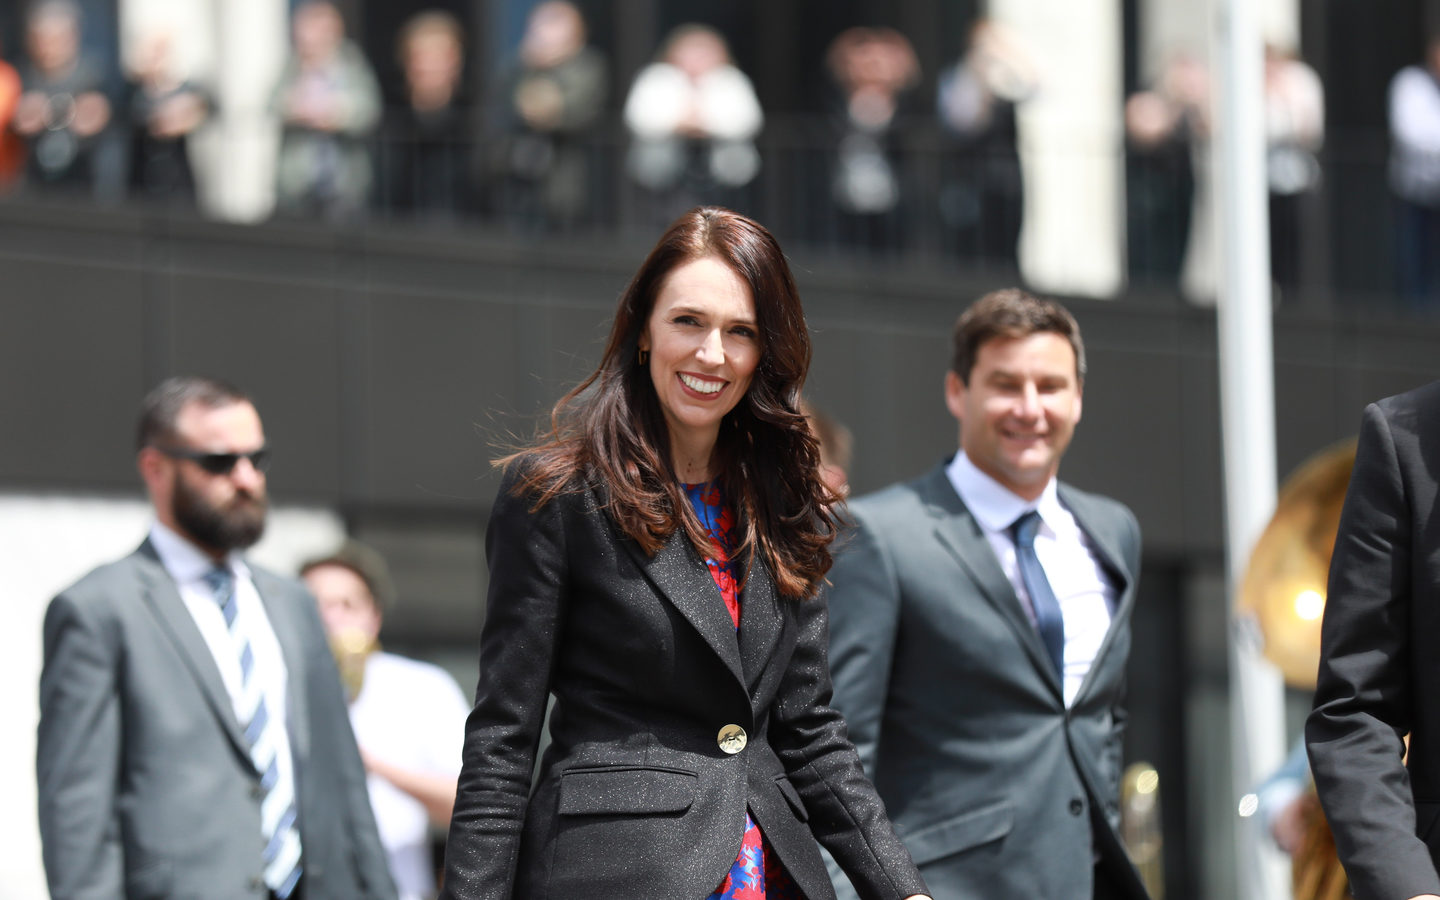 Jacinda Ardern became the 40th Prime Minister of New Zealand.